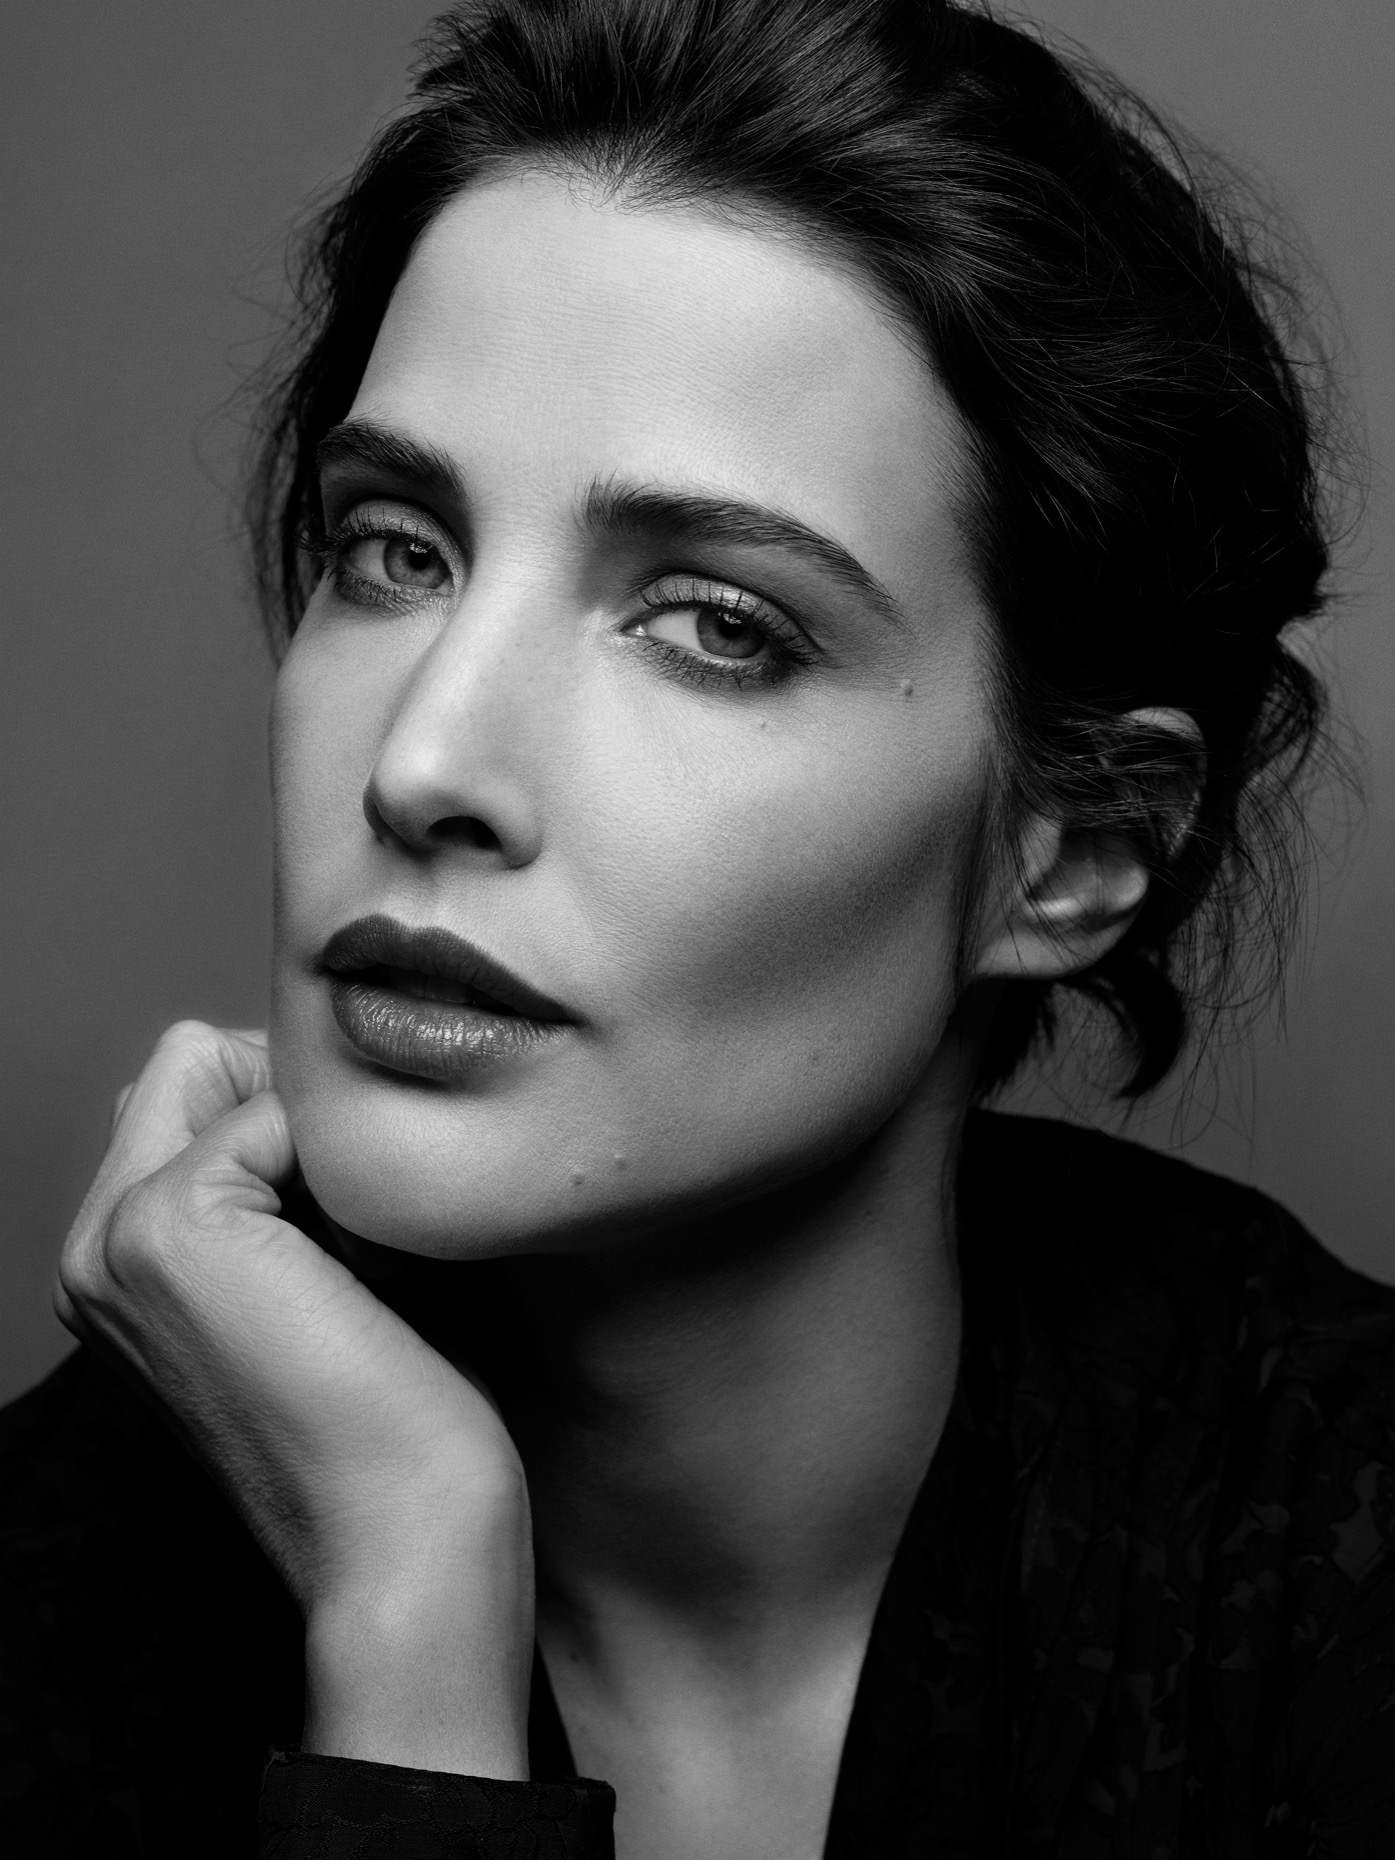 Rick_Wenner_APF_Cobie_Smulders_BW